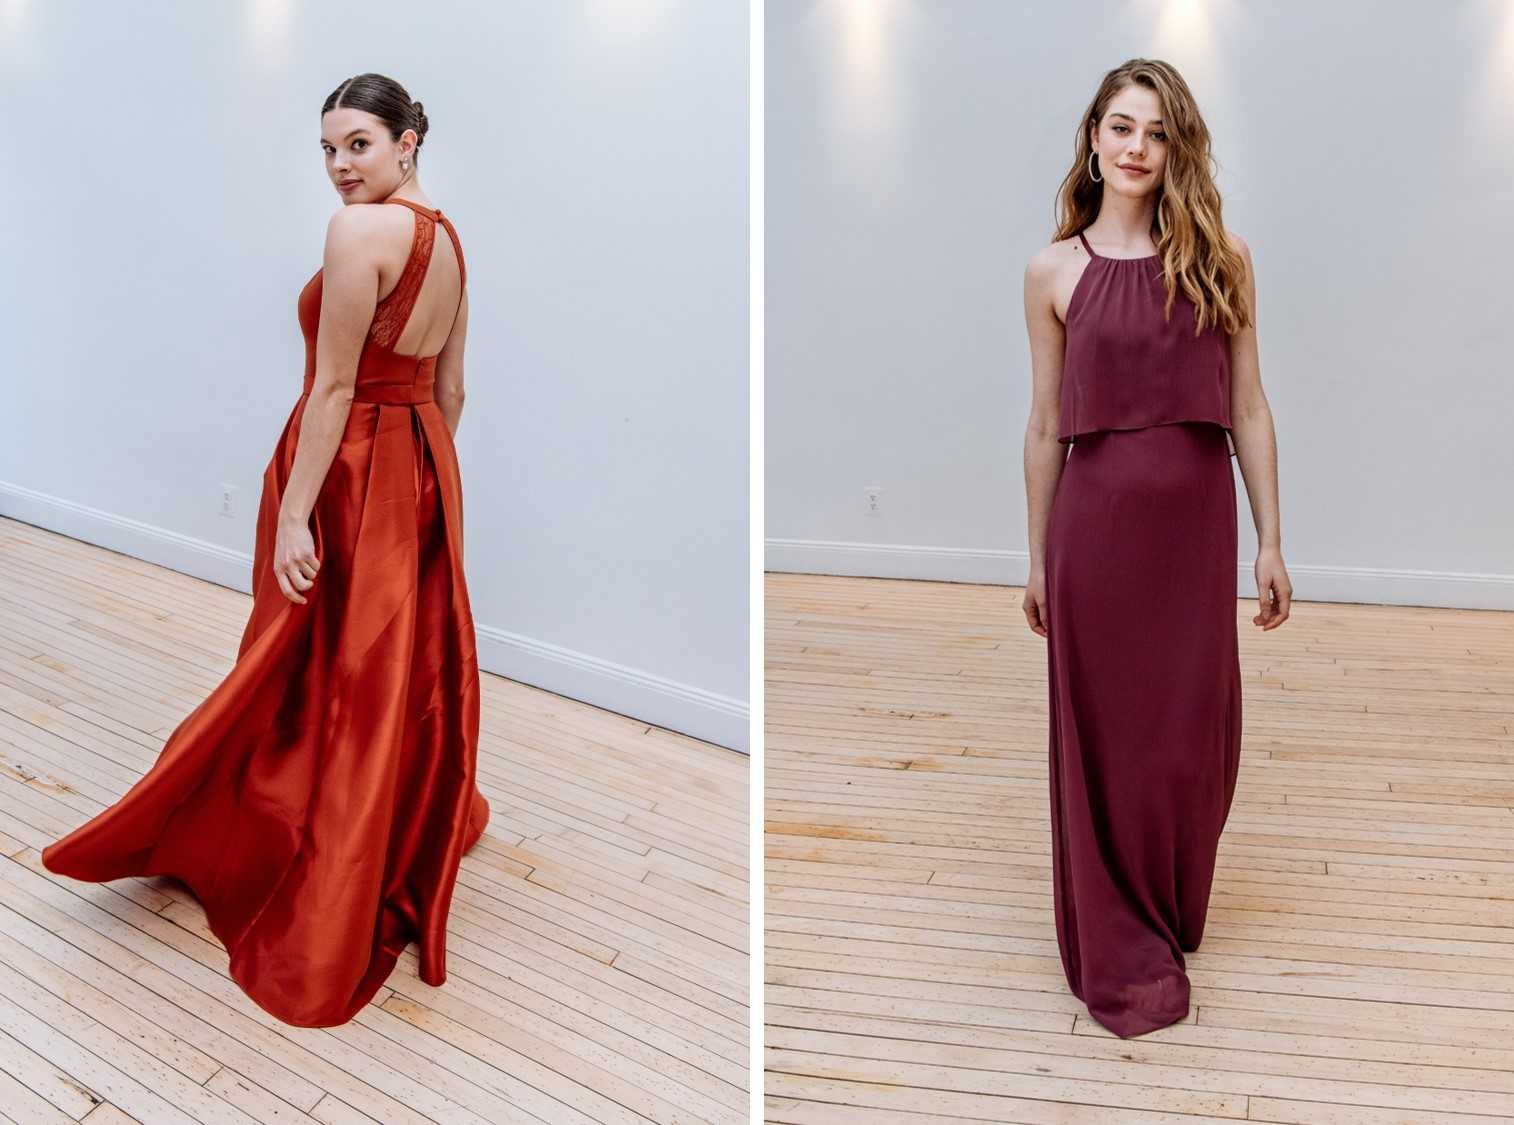 David's Bridal introduces 2 new colors for Fall 2018! See more Fall 2018 bridesmaid trends on the blog!